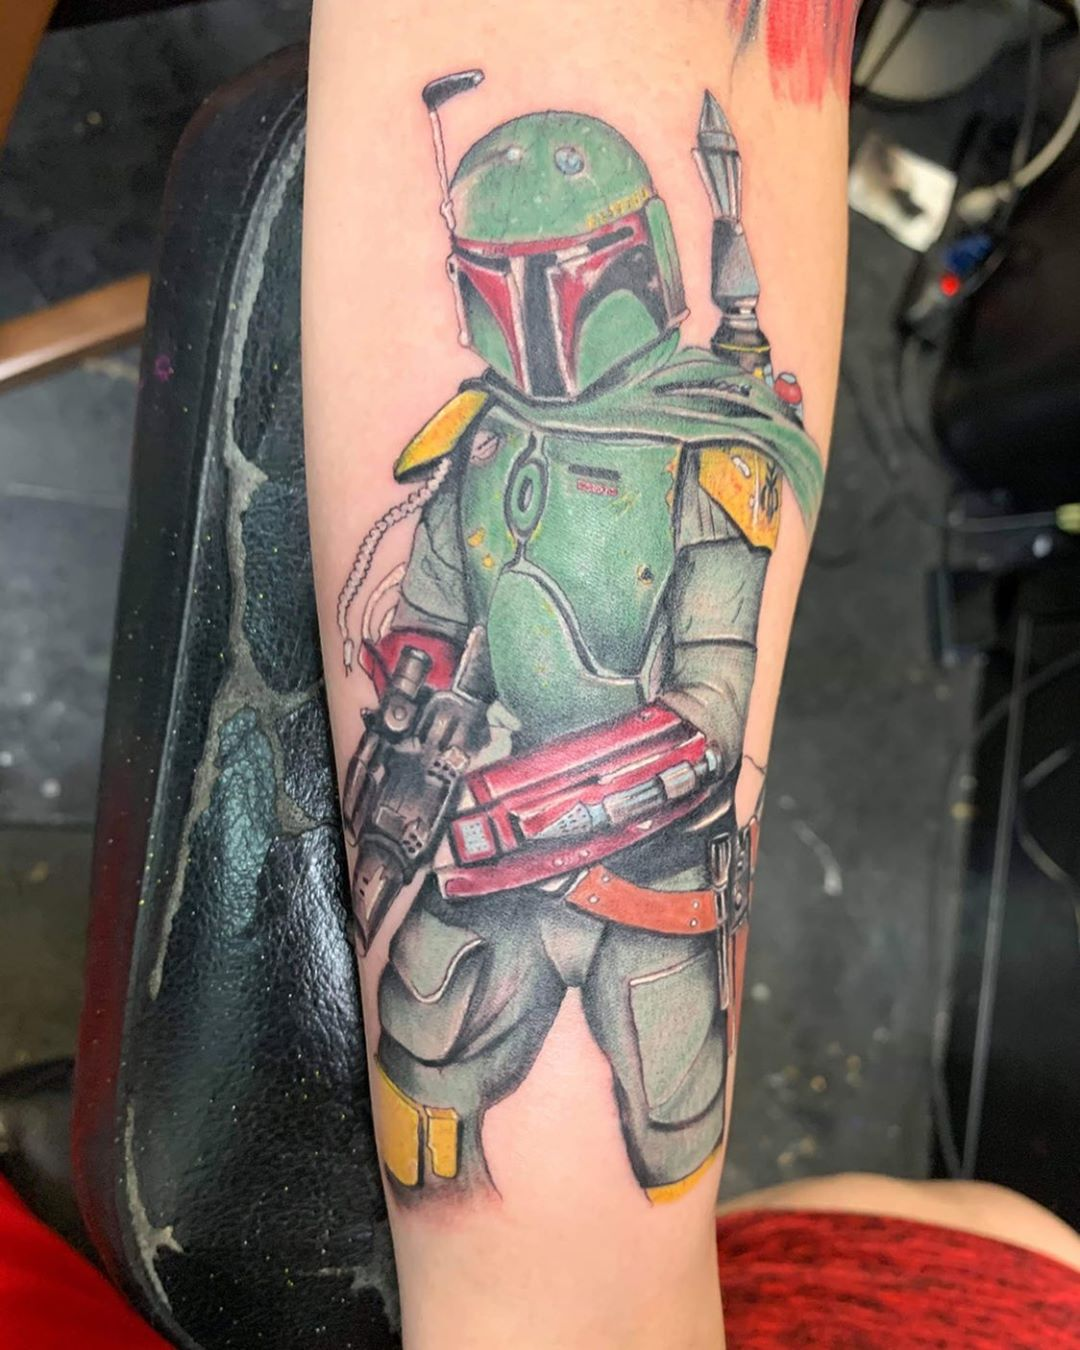 Boba Fett standing with gun tattoo